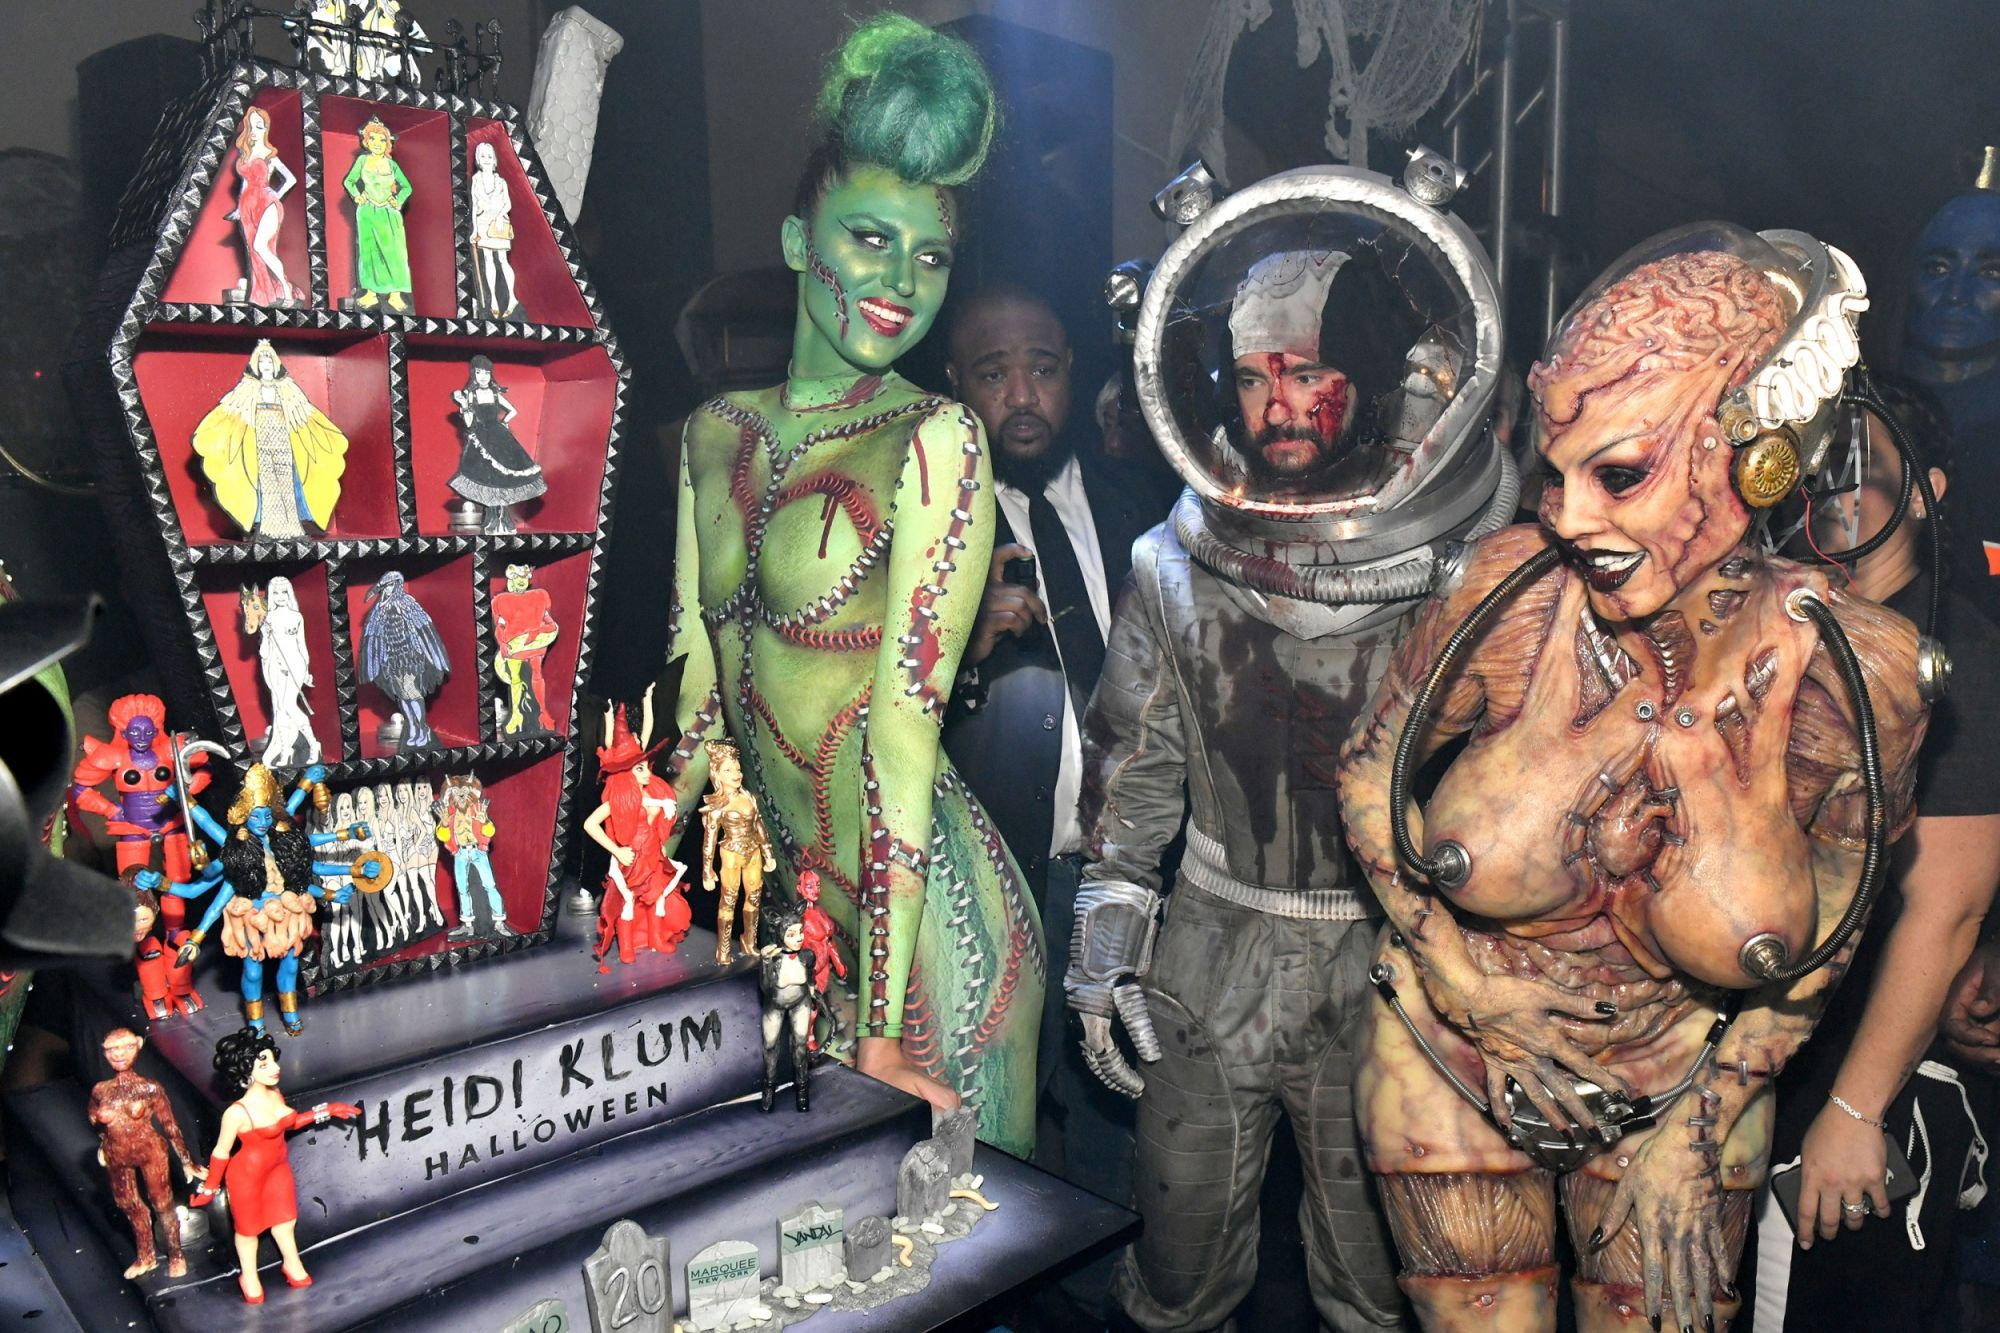 Heidi Klum Halloween Bash 2020 I Went to Heidi Klum's 20th Annual Halloween Party. Here's What